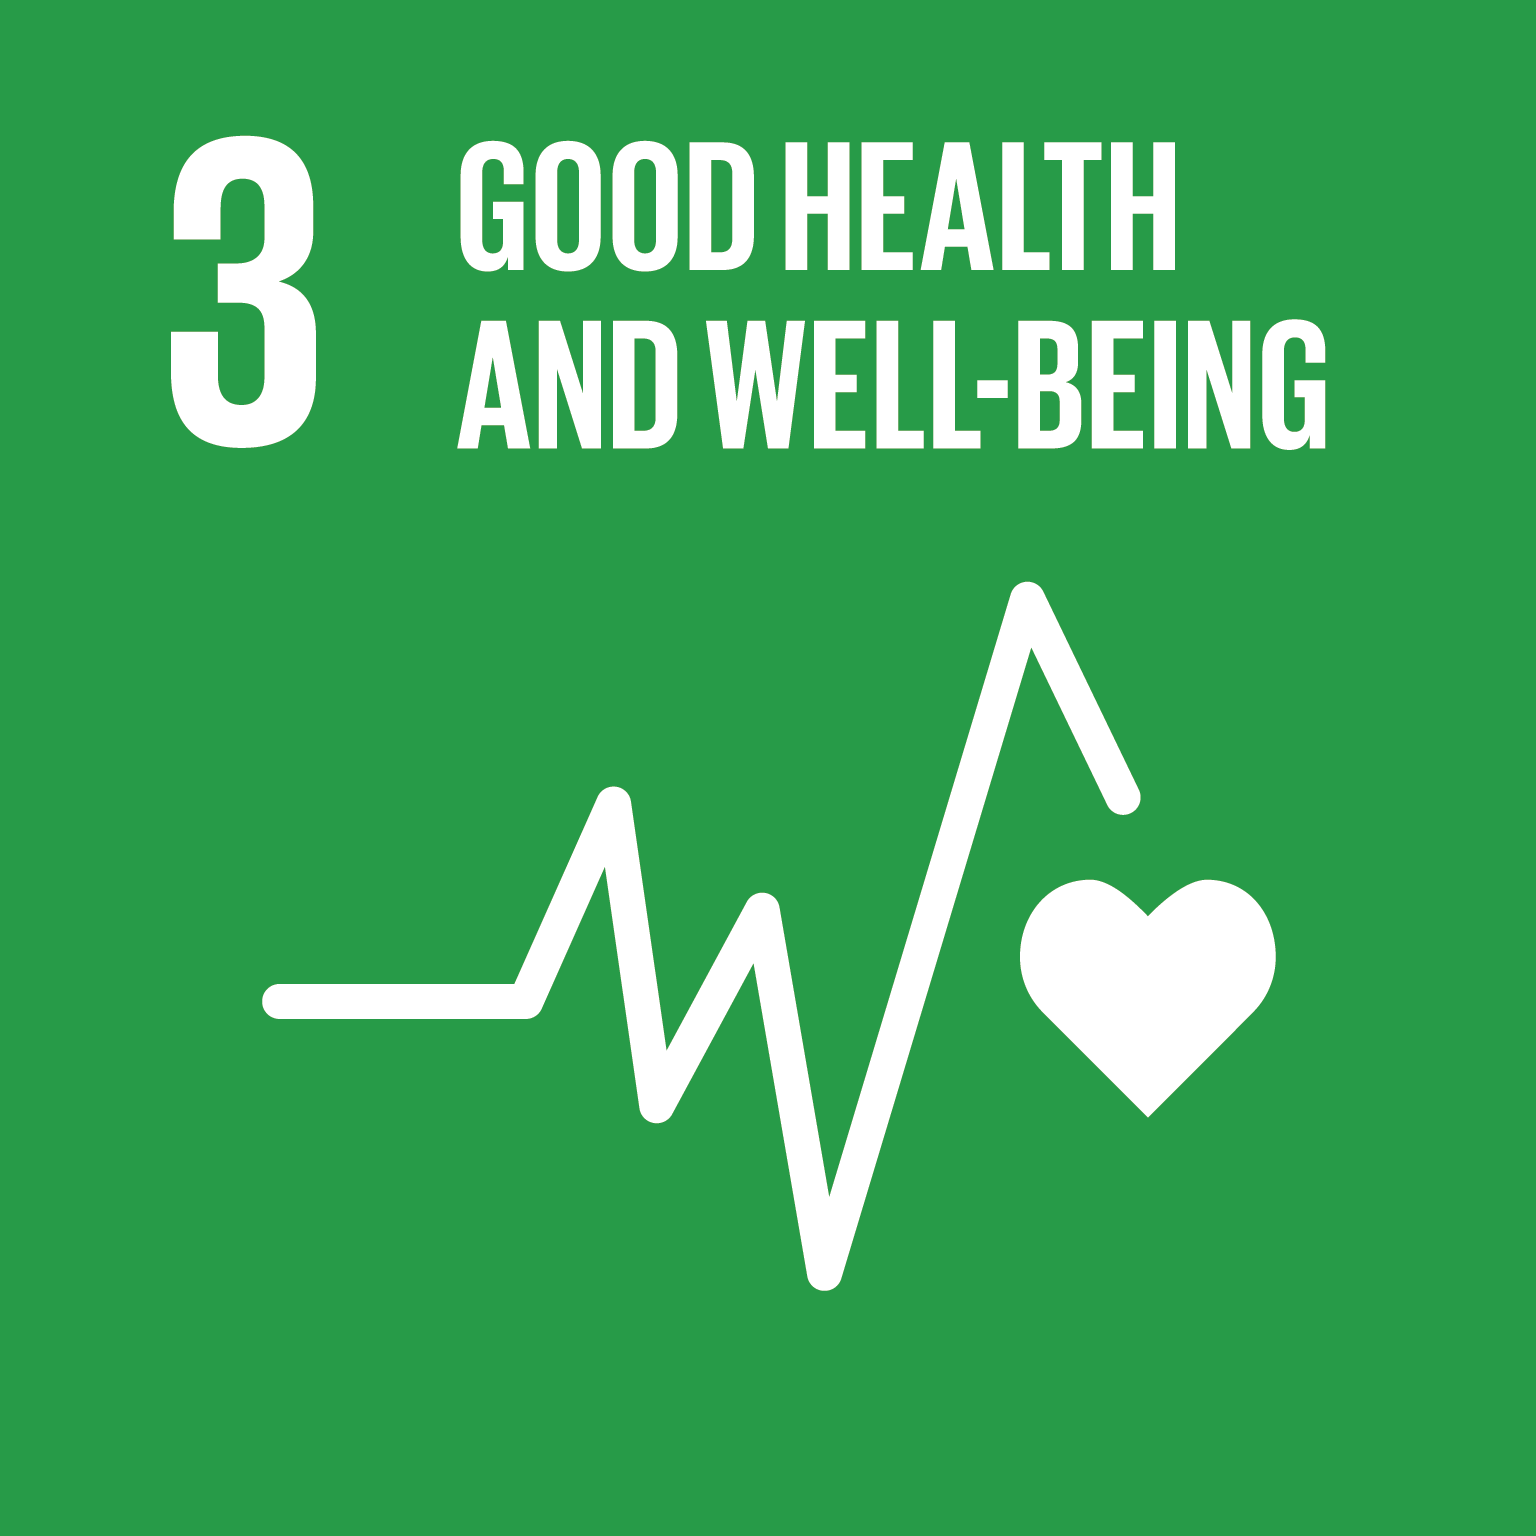 UNSDG Goal 3: Good Health and Well-being